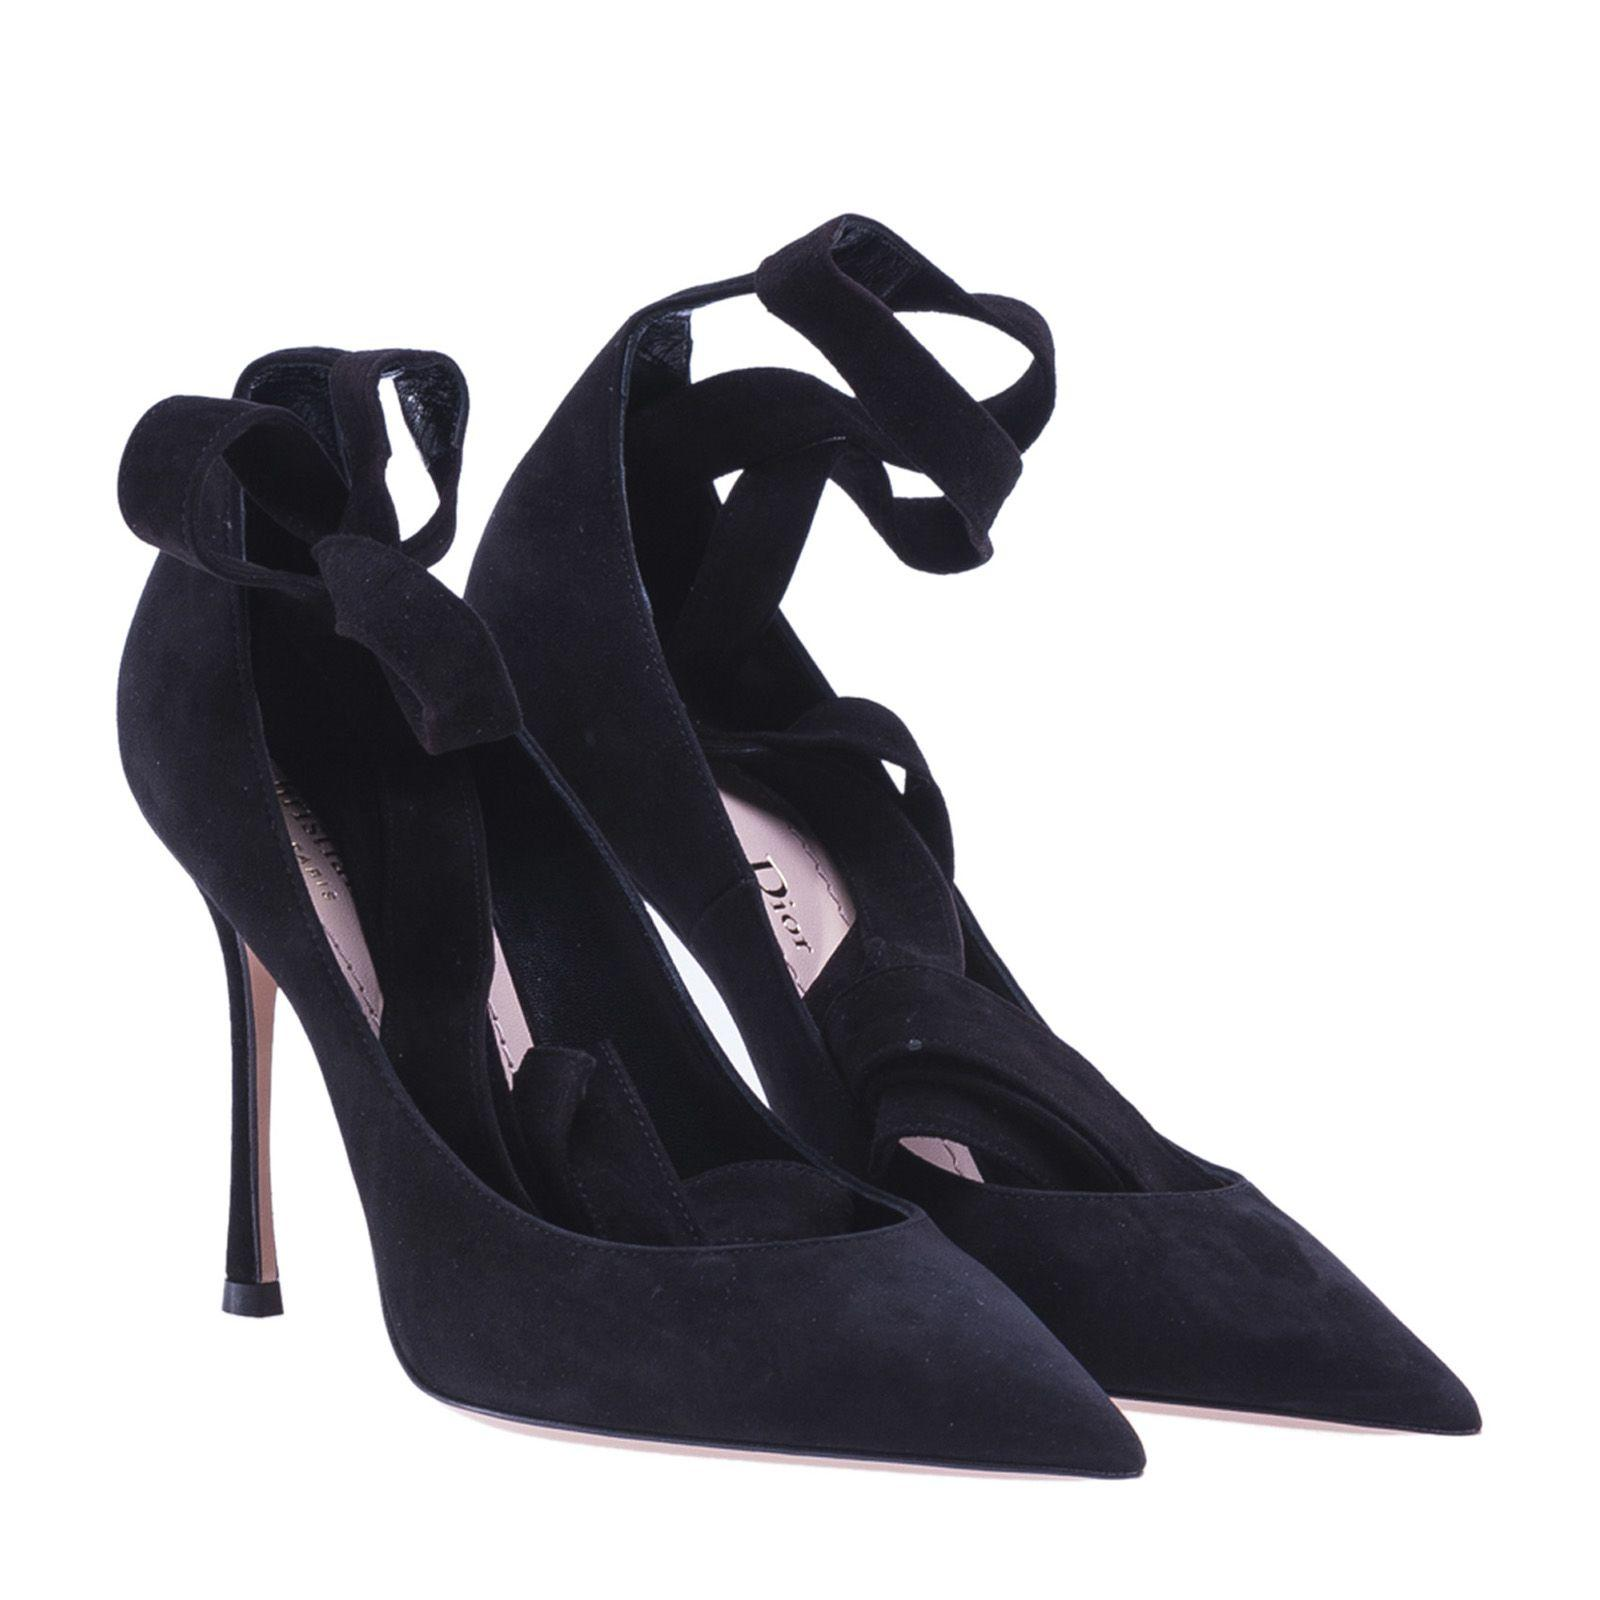 Dior Lace-Up Pumps In Black